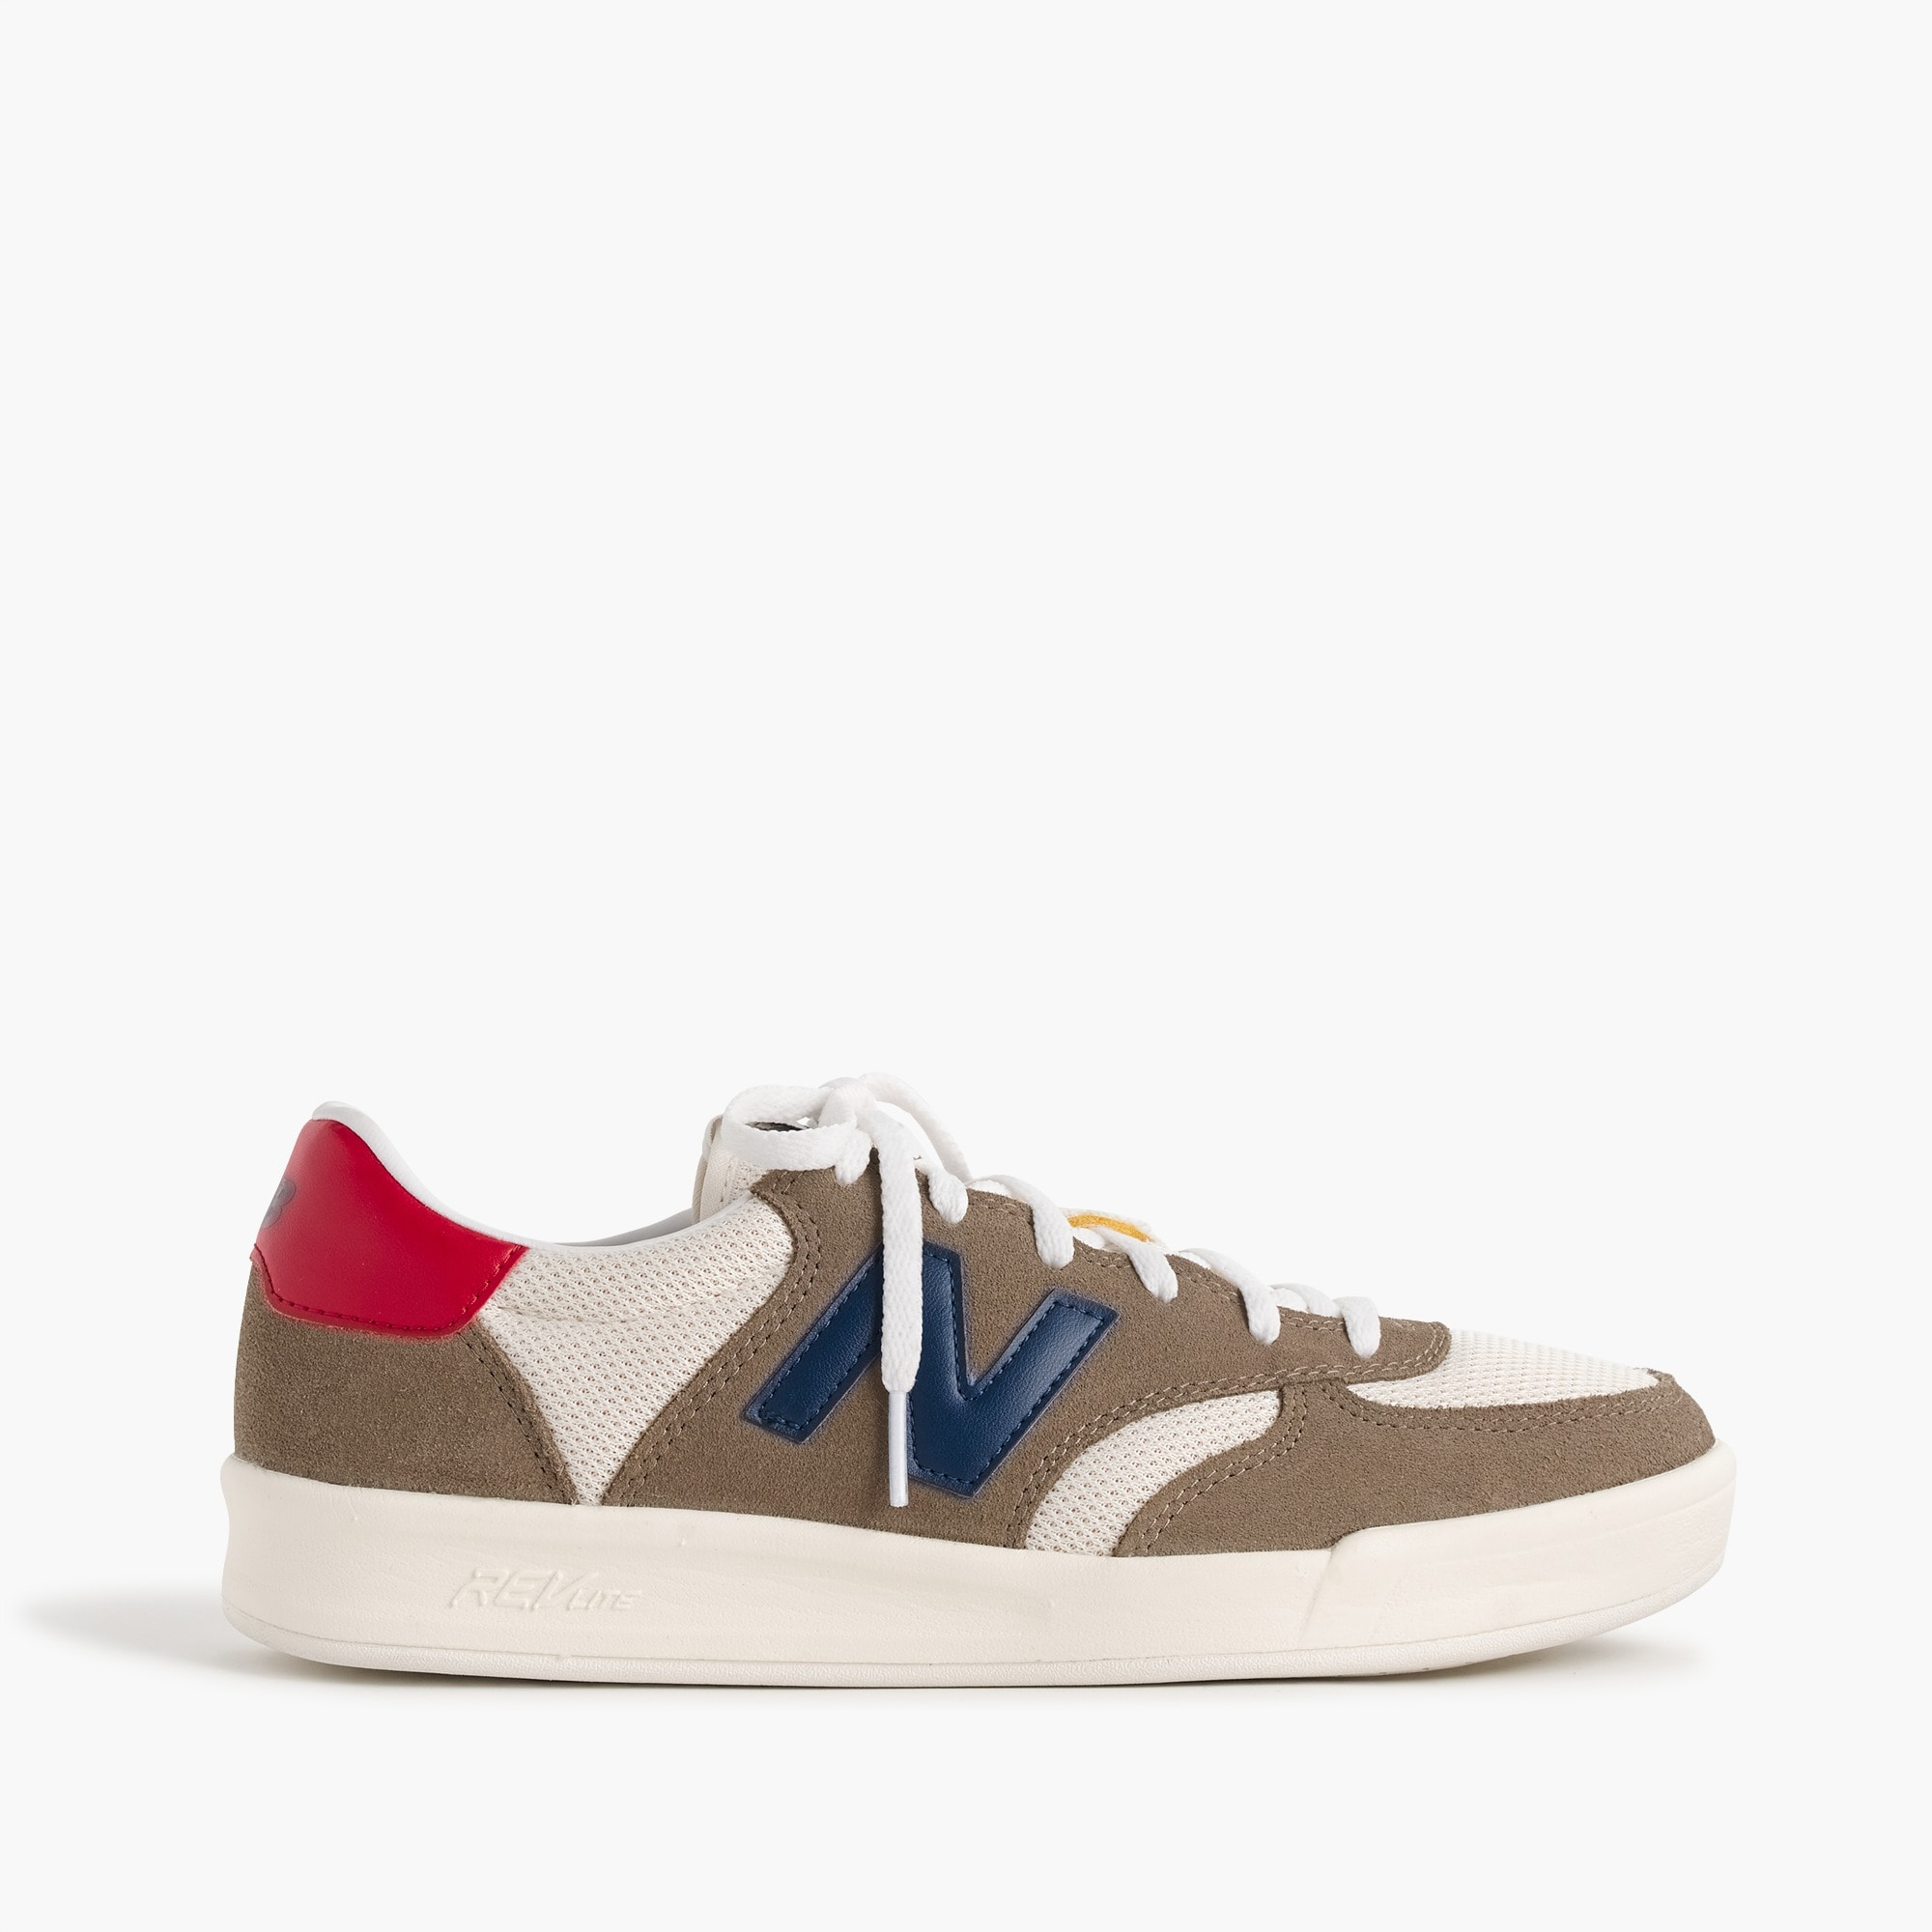 new balance for j.crew crt300 sneakers : men's sneakers